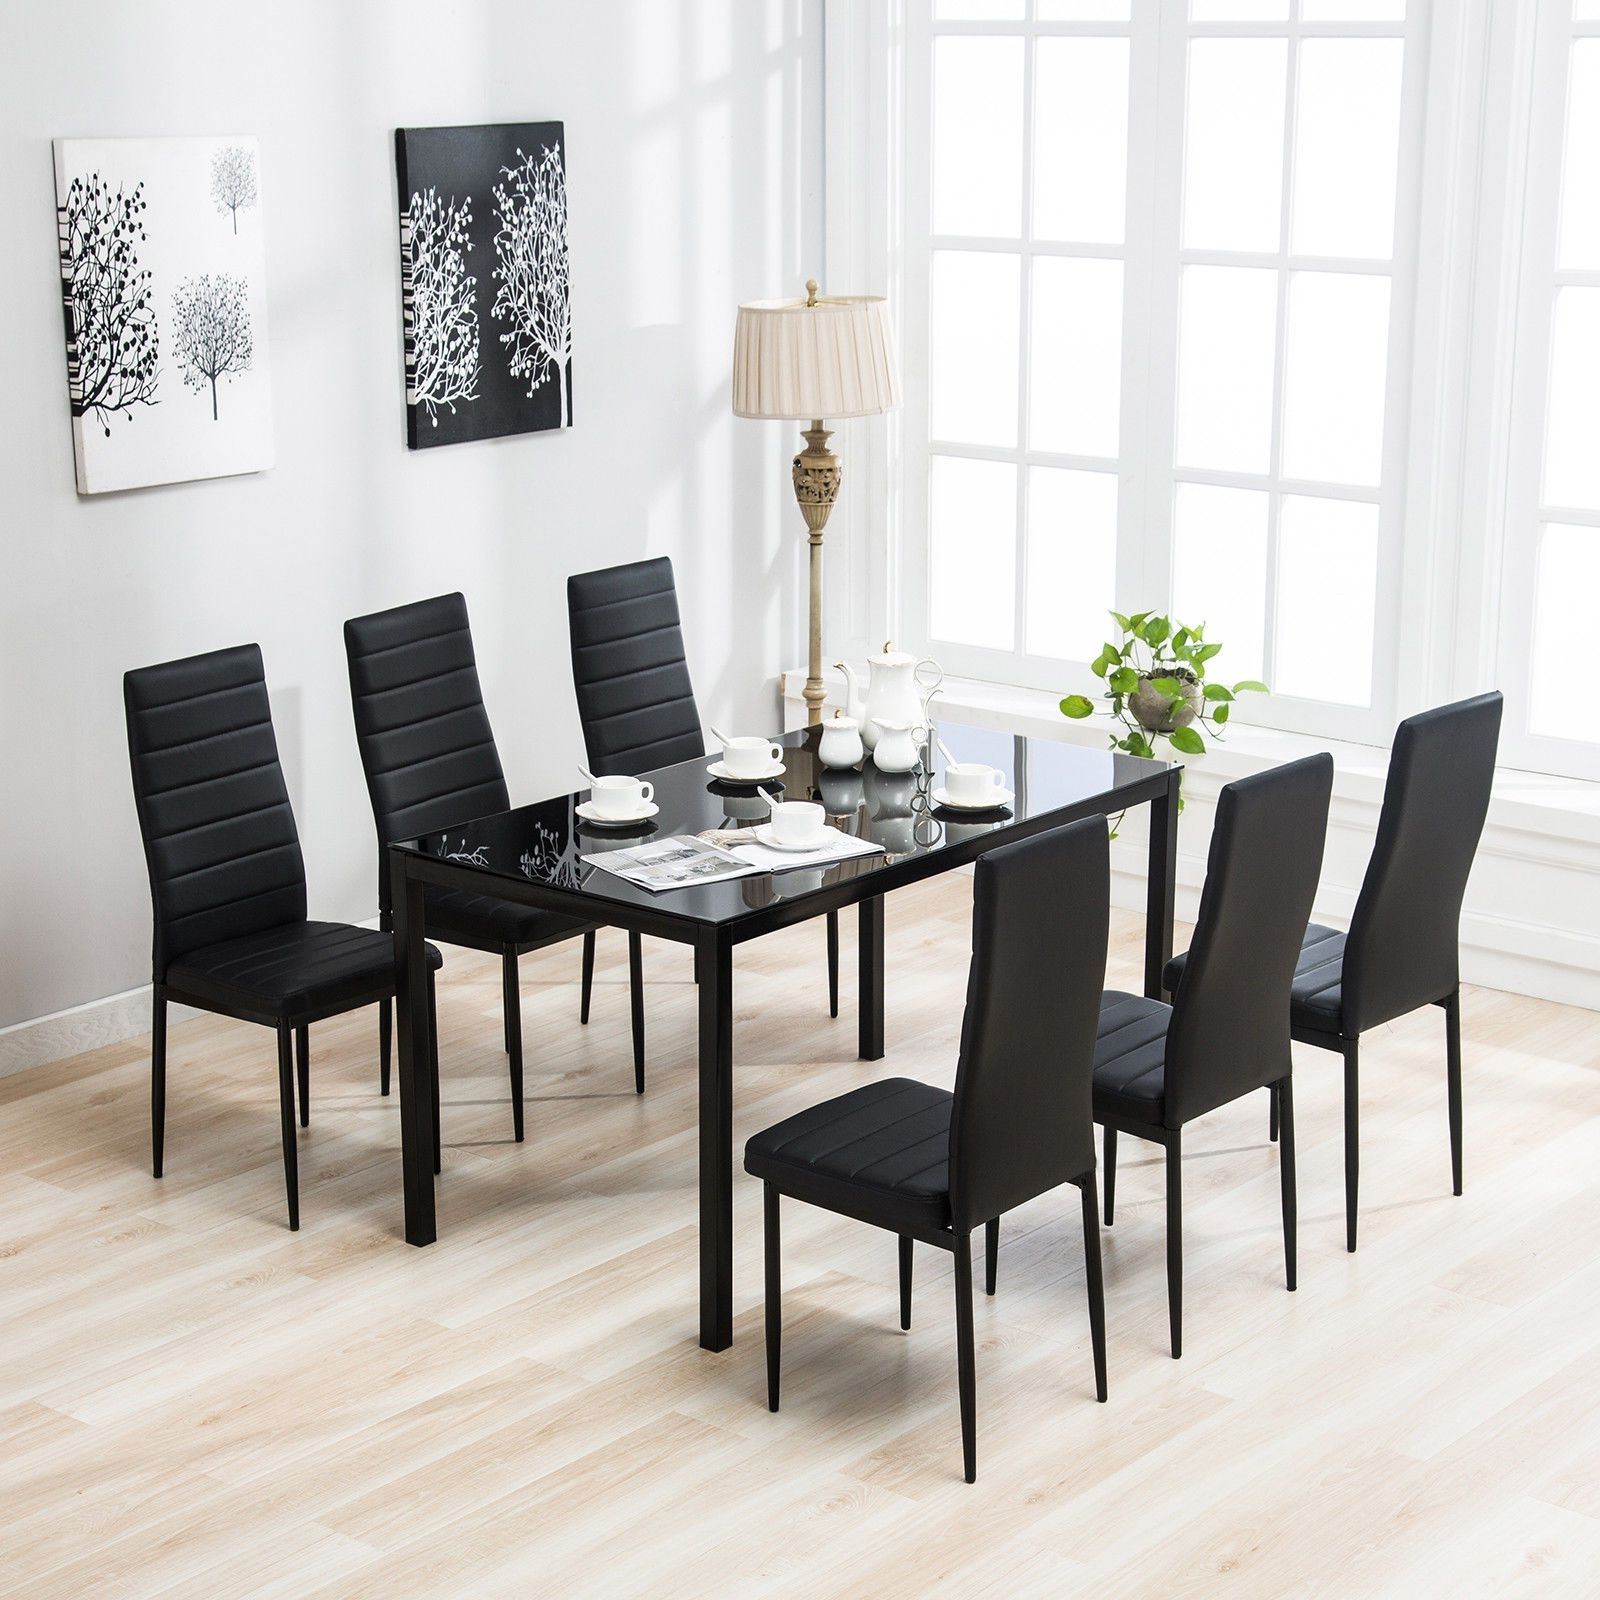 7 Piece Dining Table Set 6 Chairs Black Glass Metal Kitchen Room With Regard To Well Liked Round Black Glass Dining Tables And Chairs (View 2 of 25)